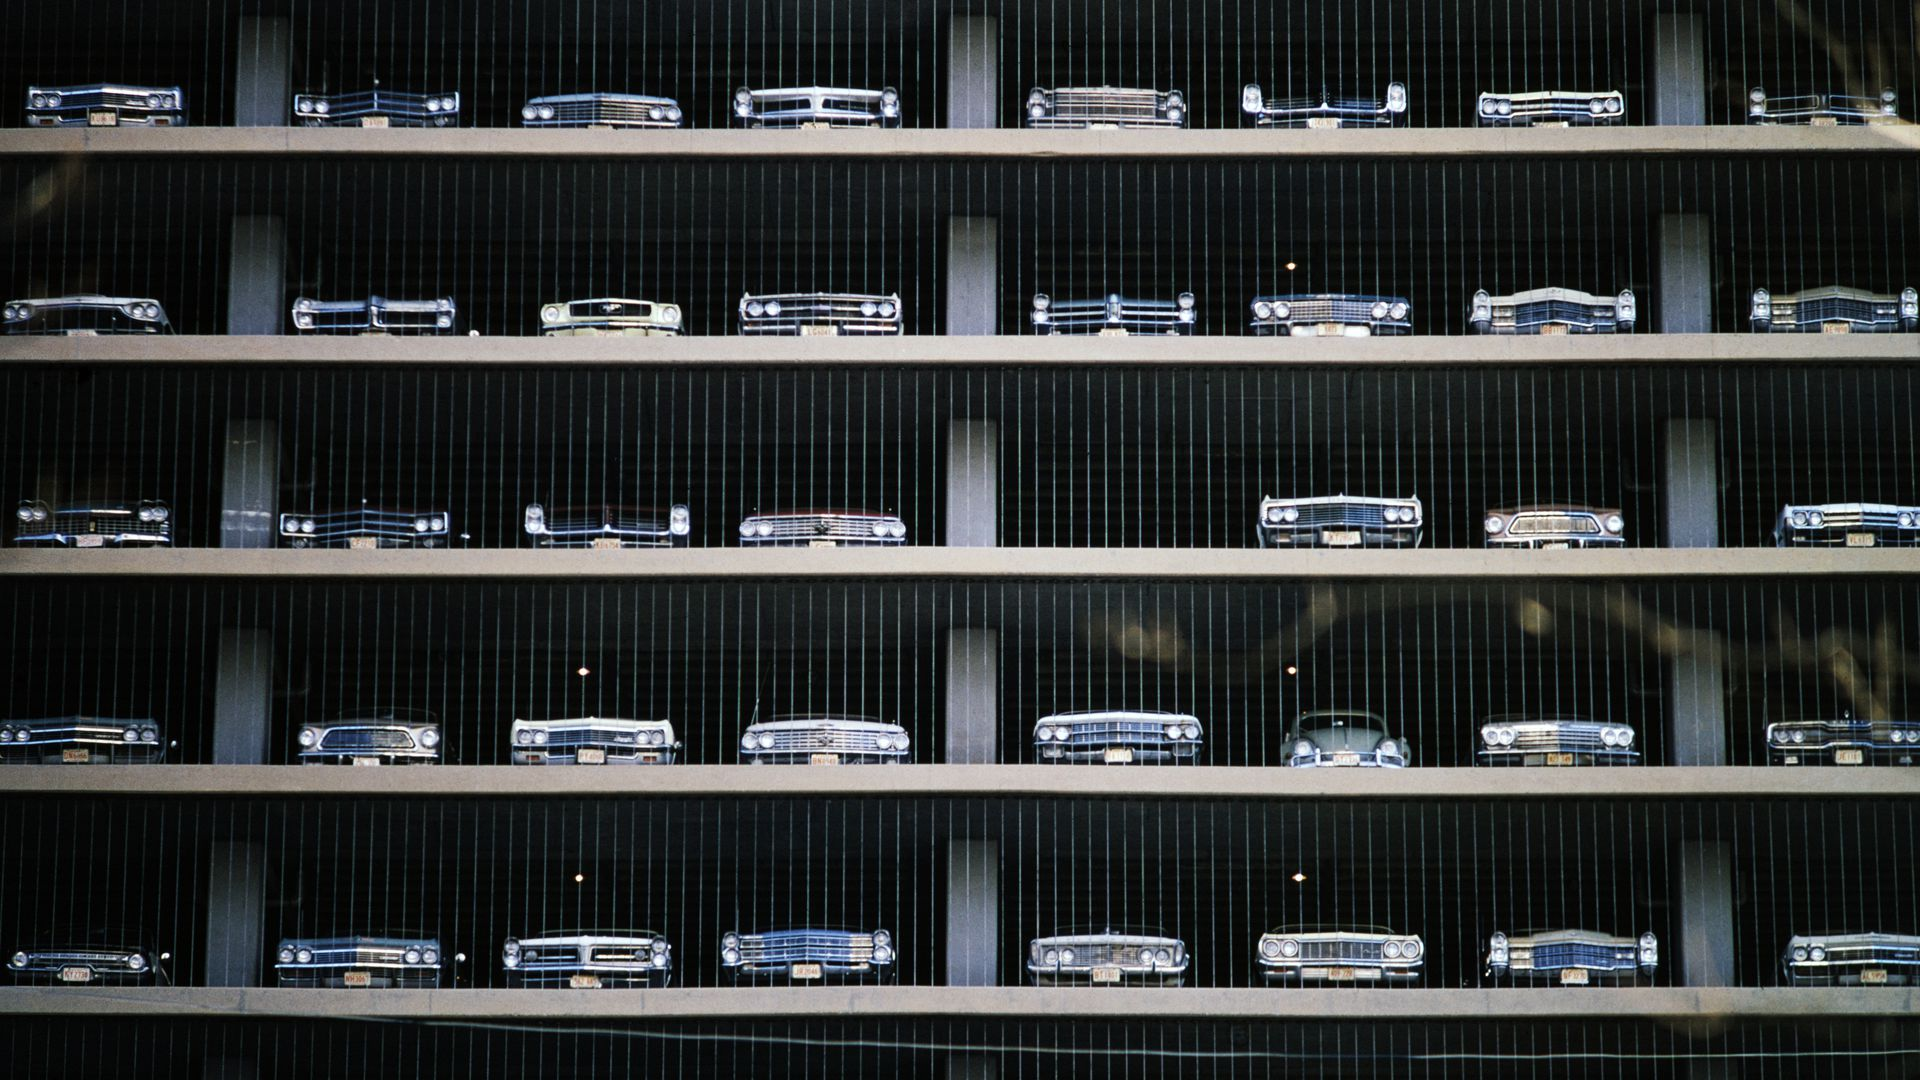 Side view of a parking garage in Chicago from October 1967.